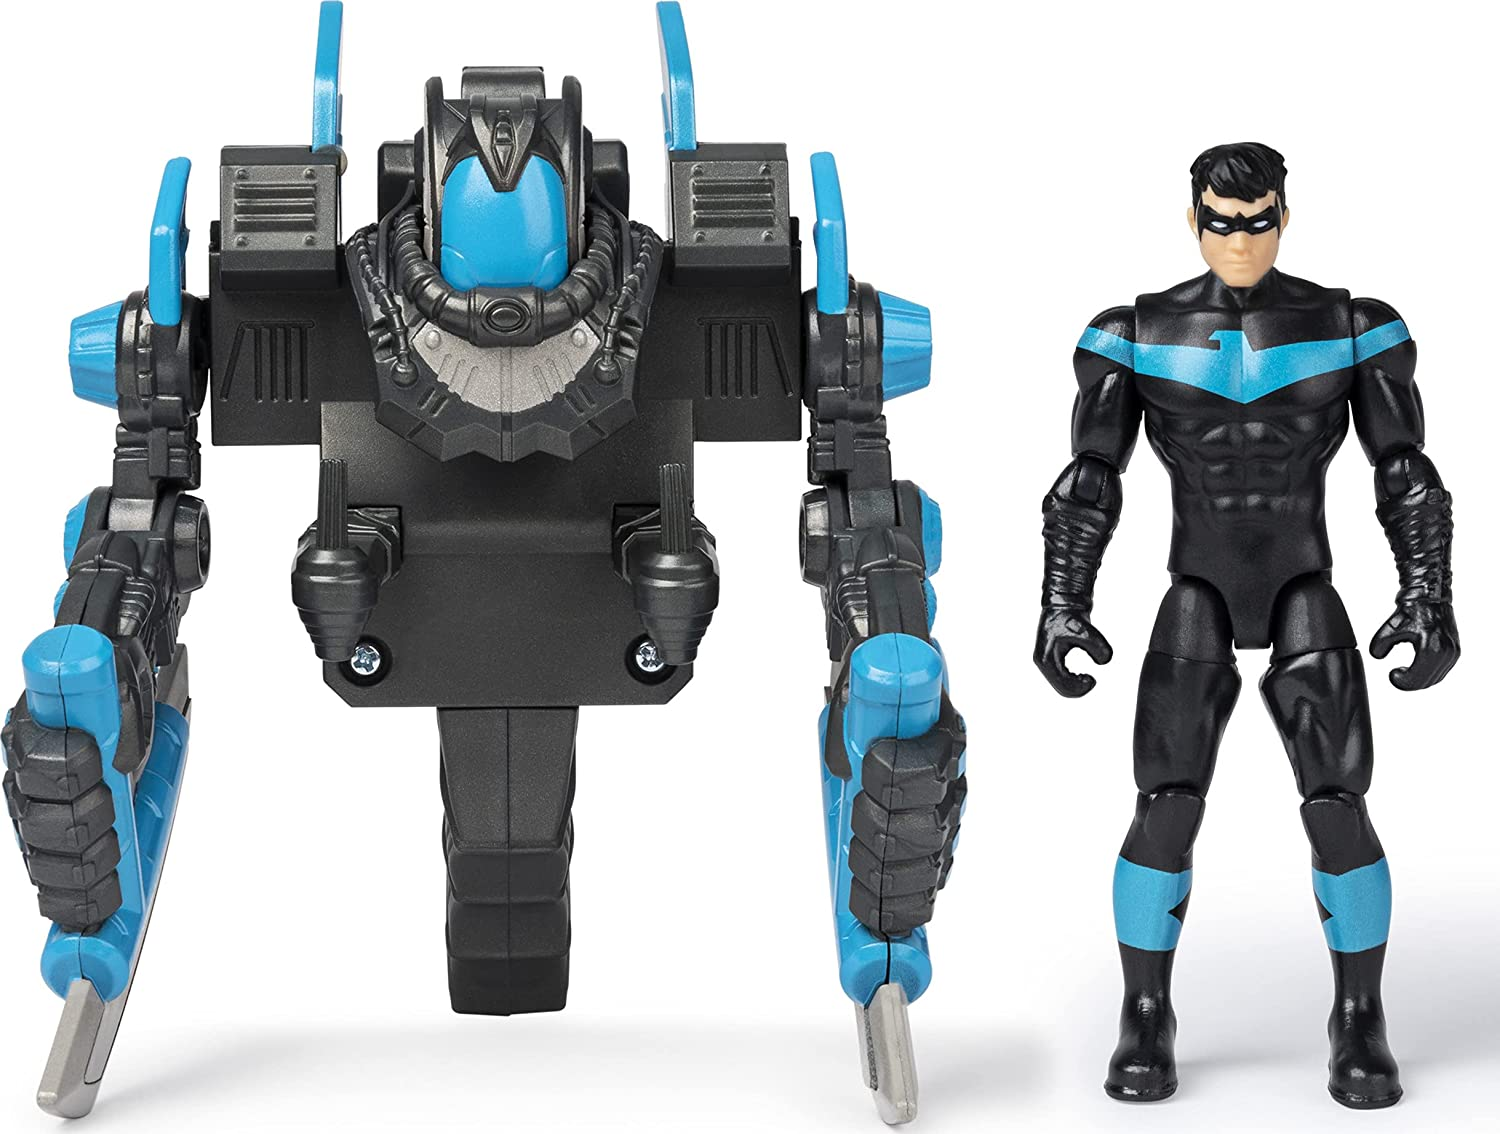 BATMAN 4-Inch NIGHTWING Mega Gear Manufacturer Phoenix Mall OFFicial shop Figure with Deluxe Tra Action